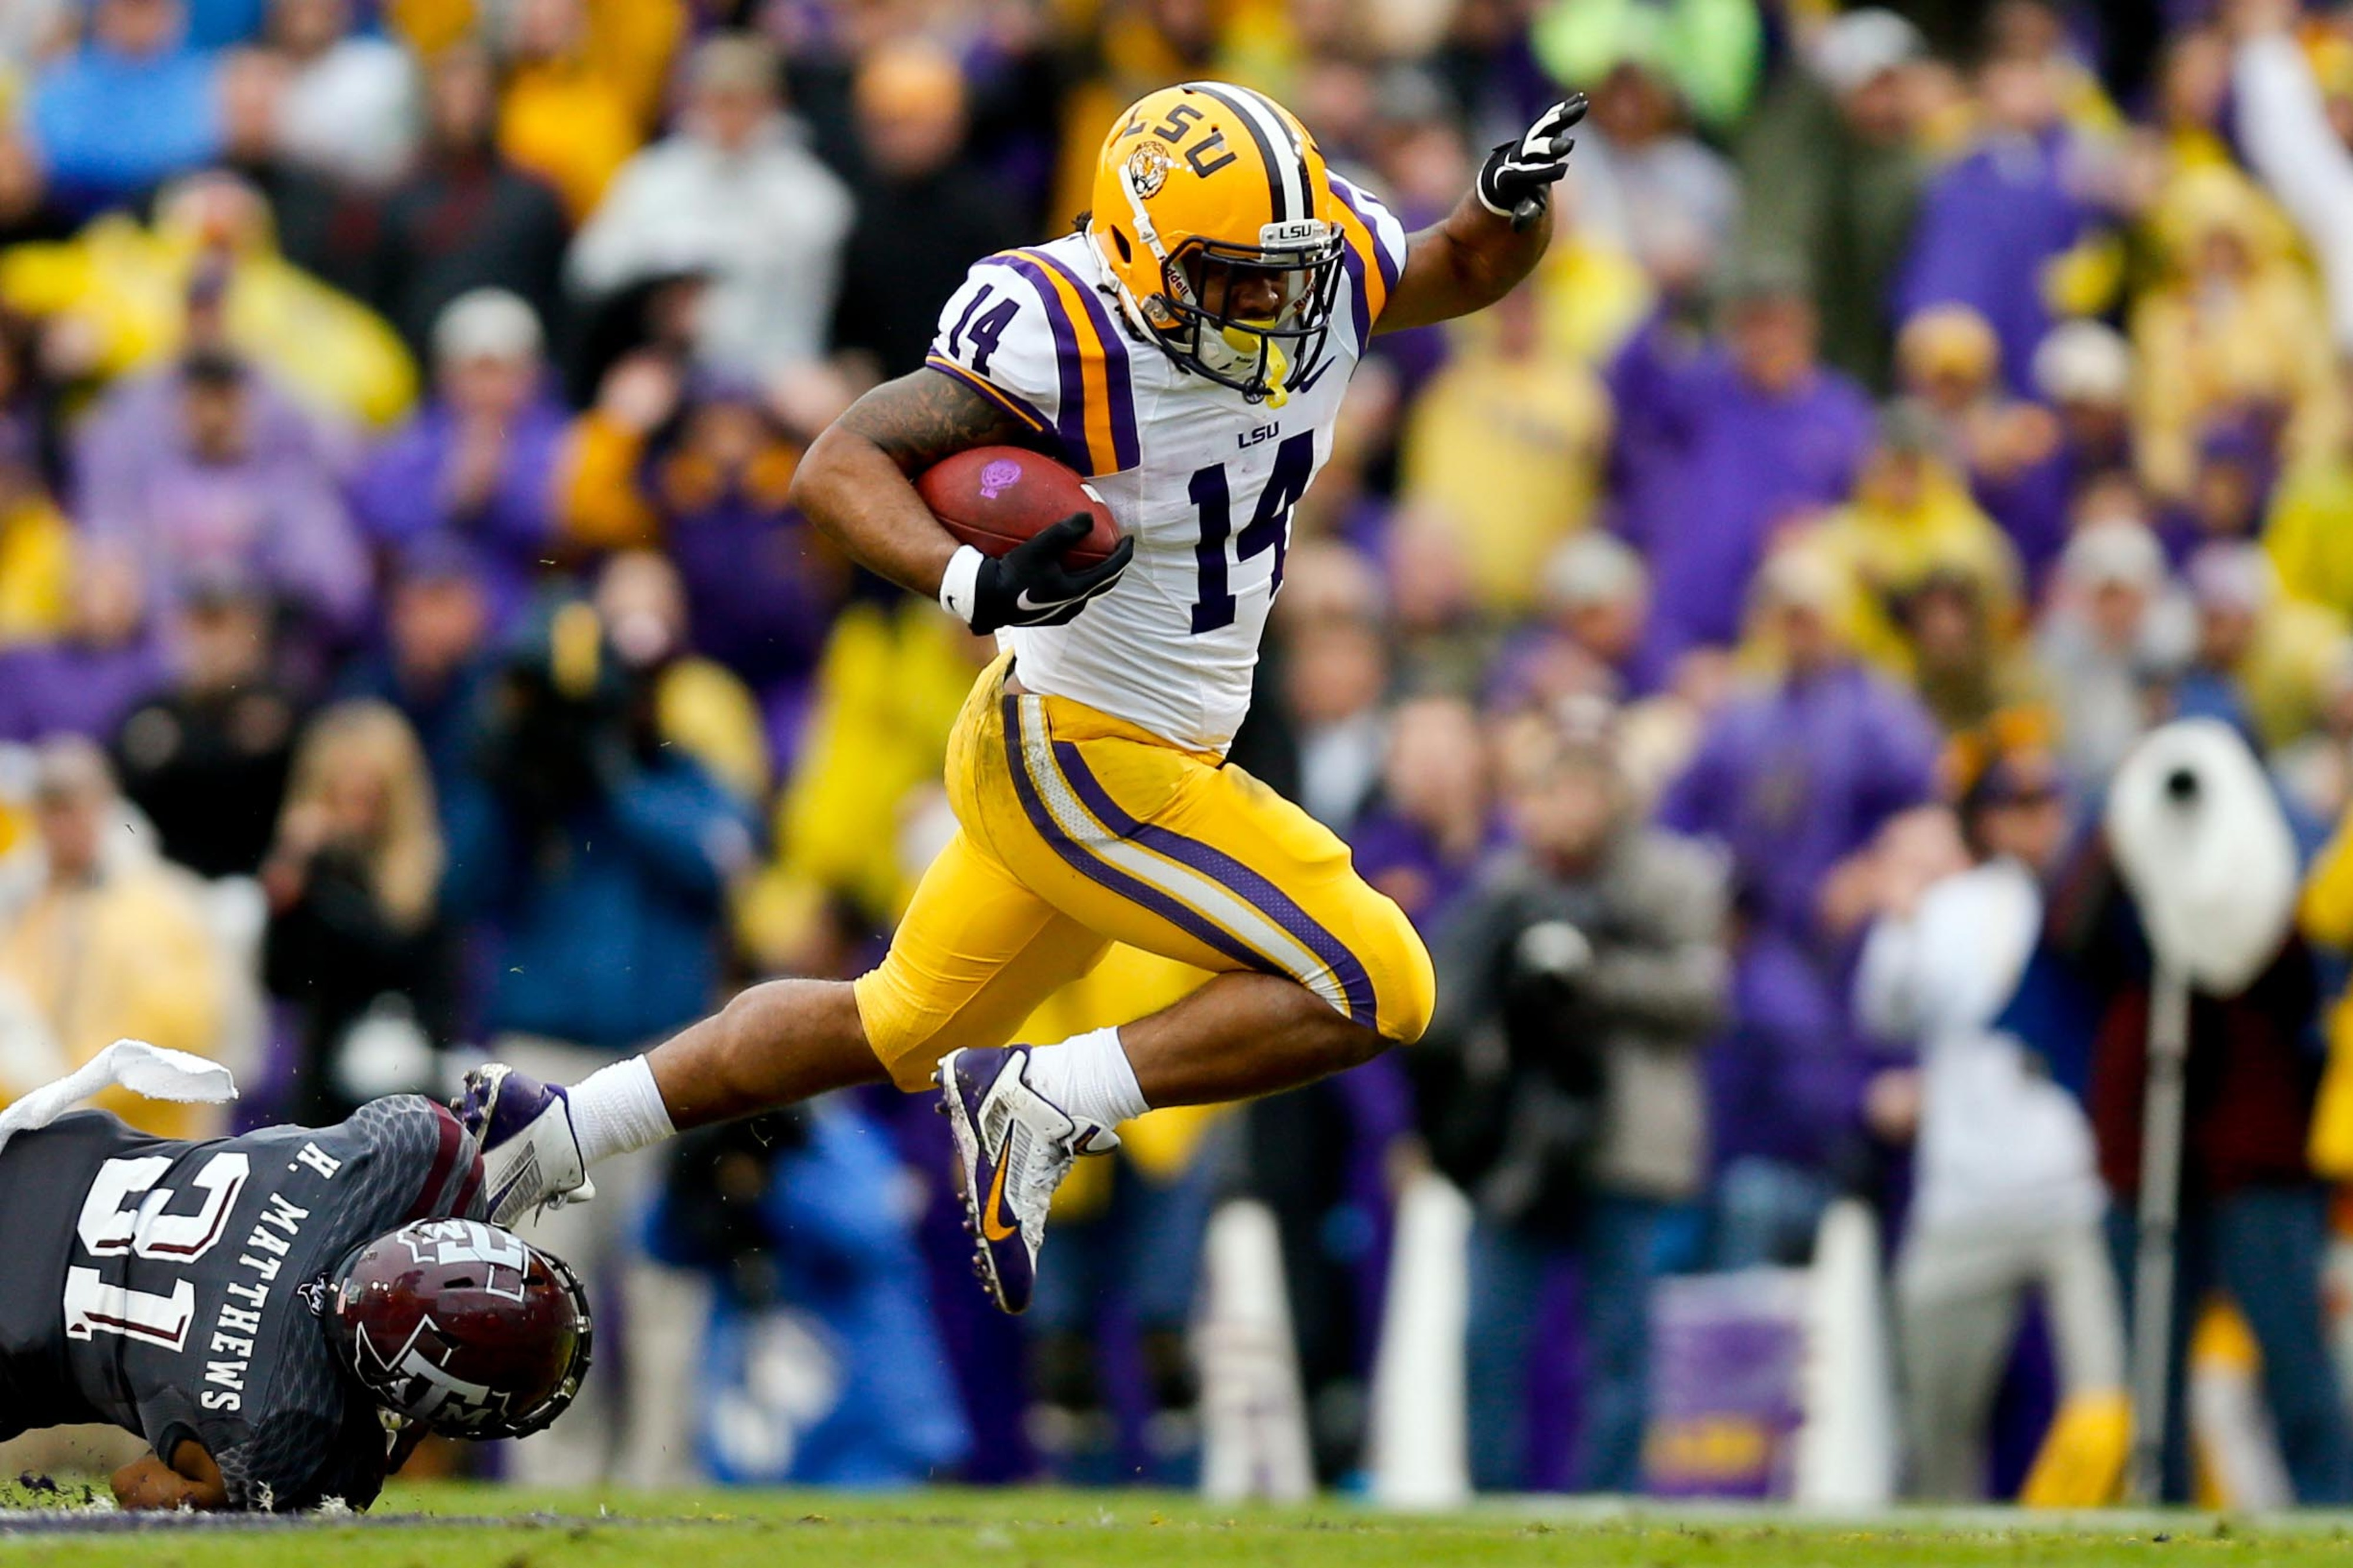 LSU running back Terrence Magee.